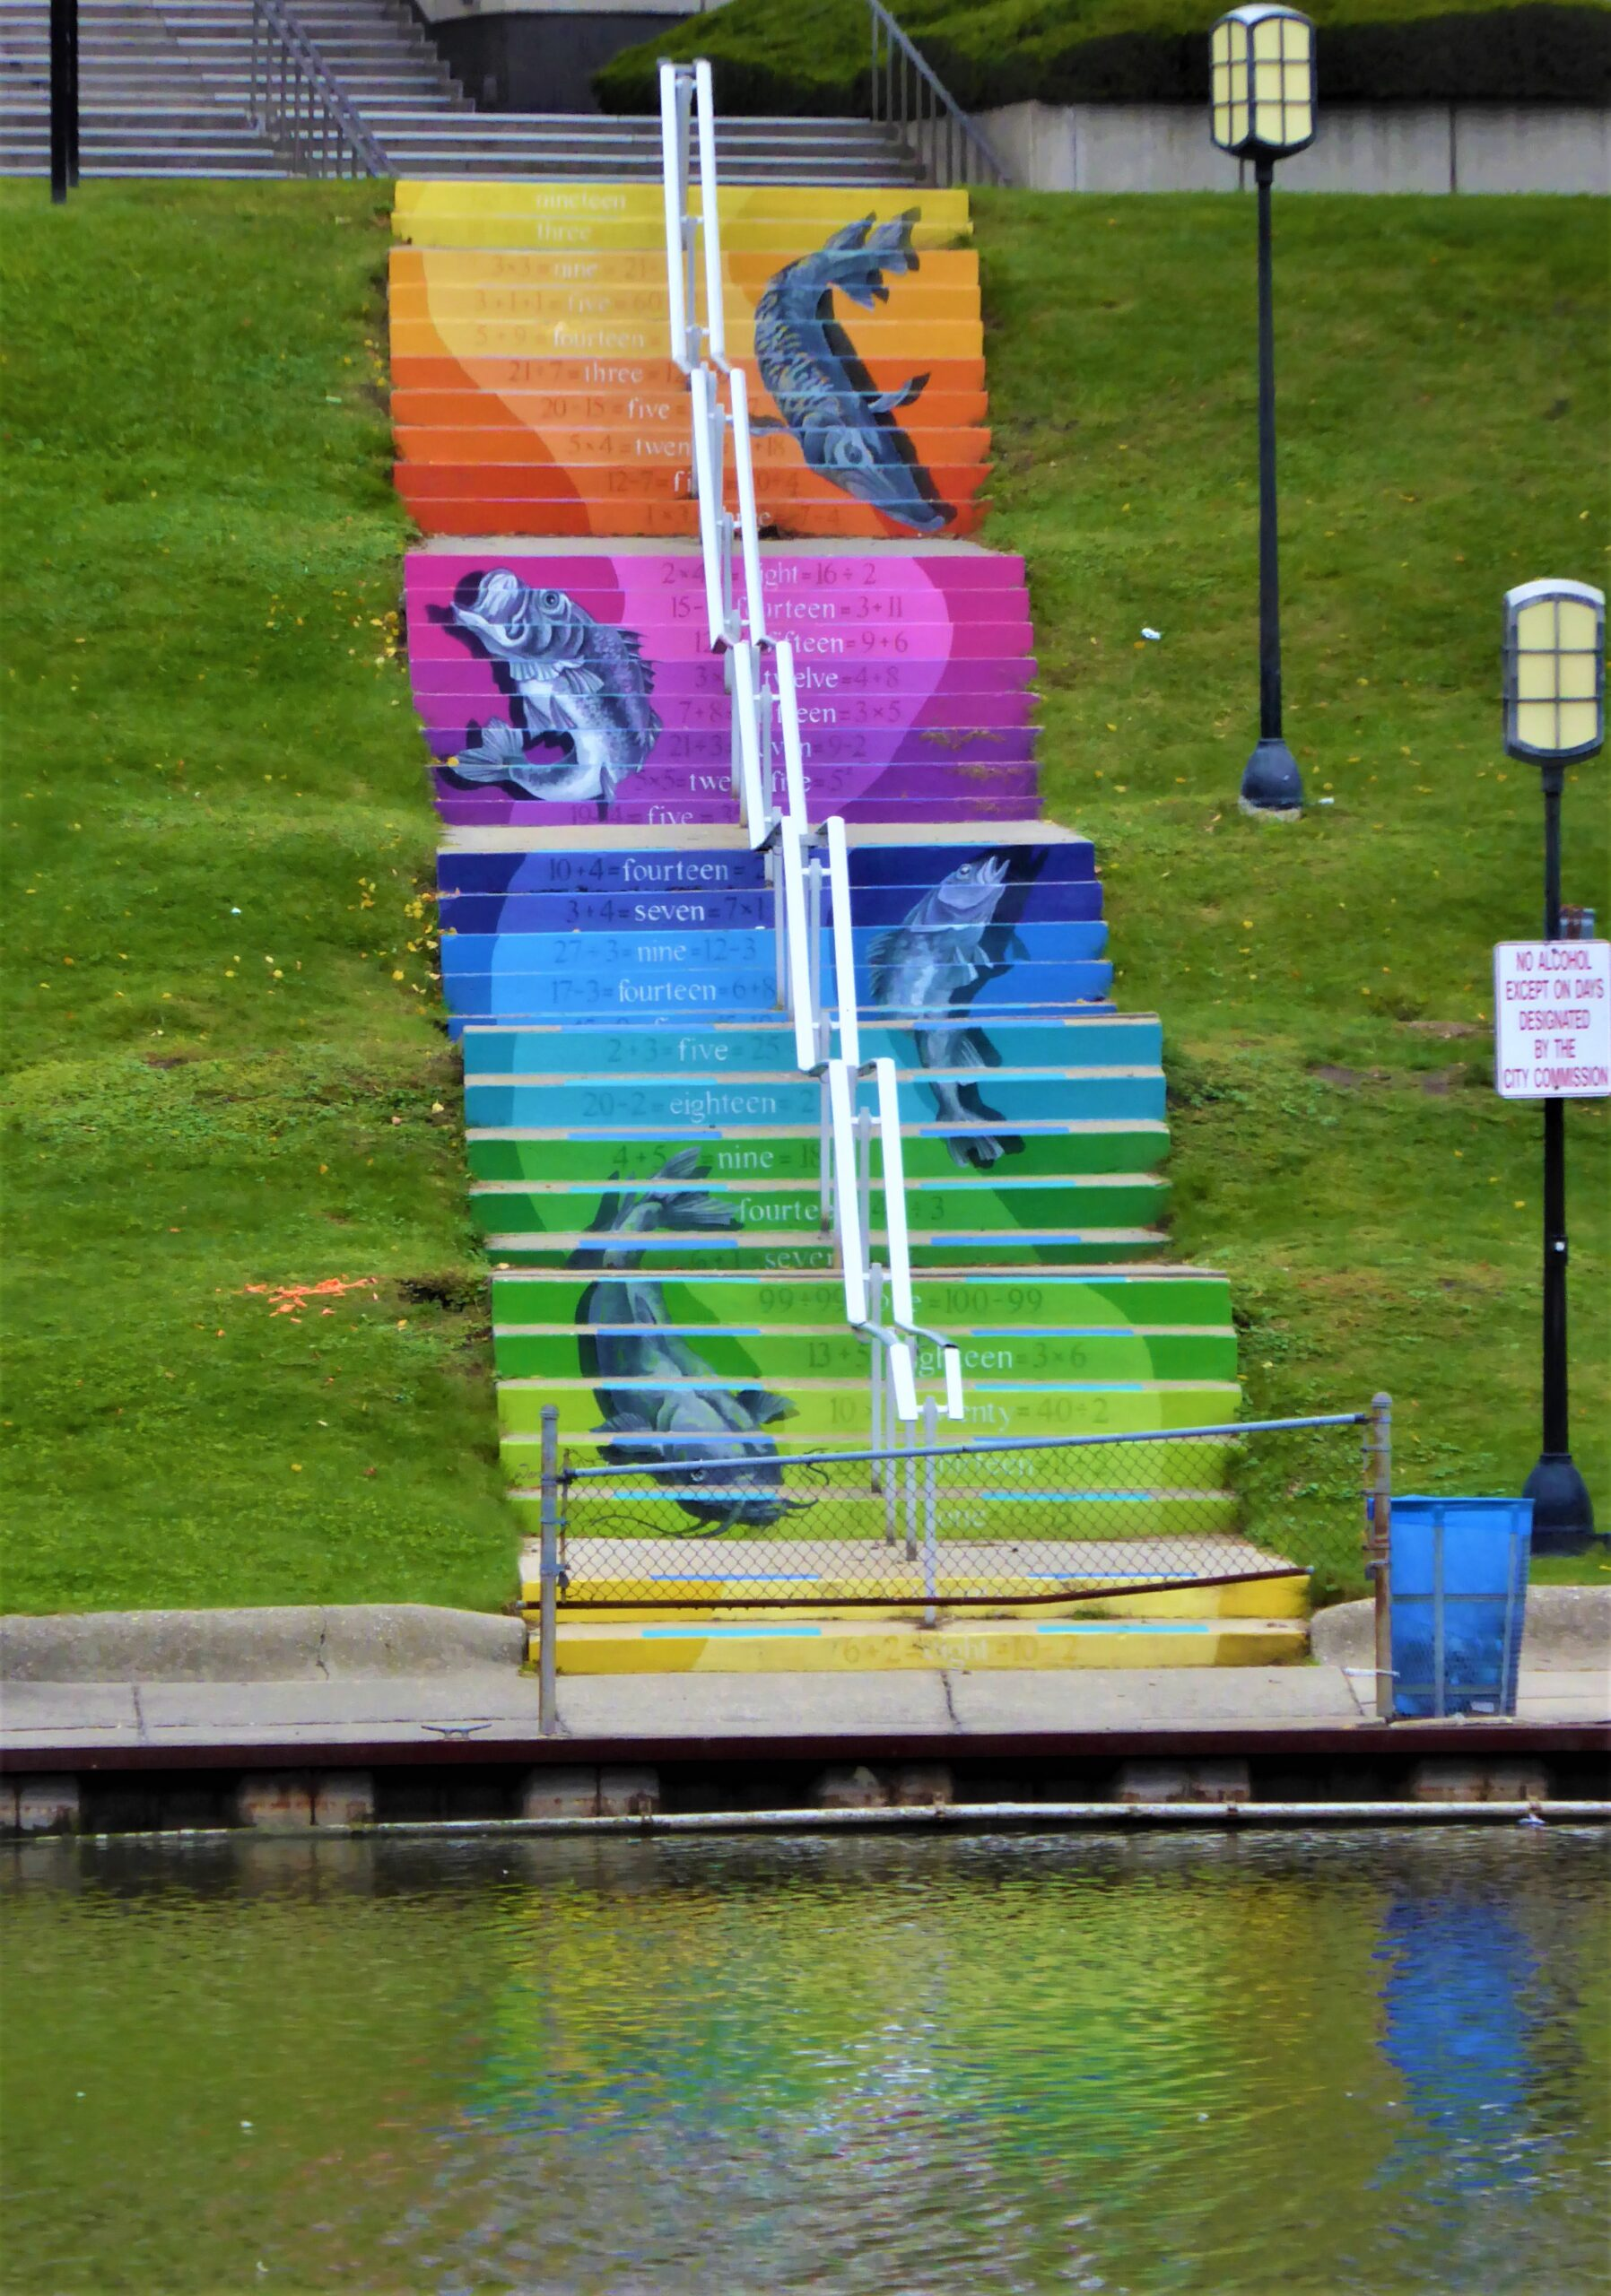 A photo of a mural on stairs that is a rainbow with a few fish jumping painted on top